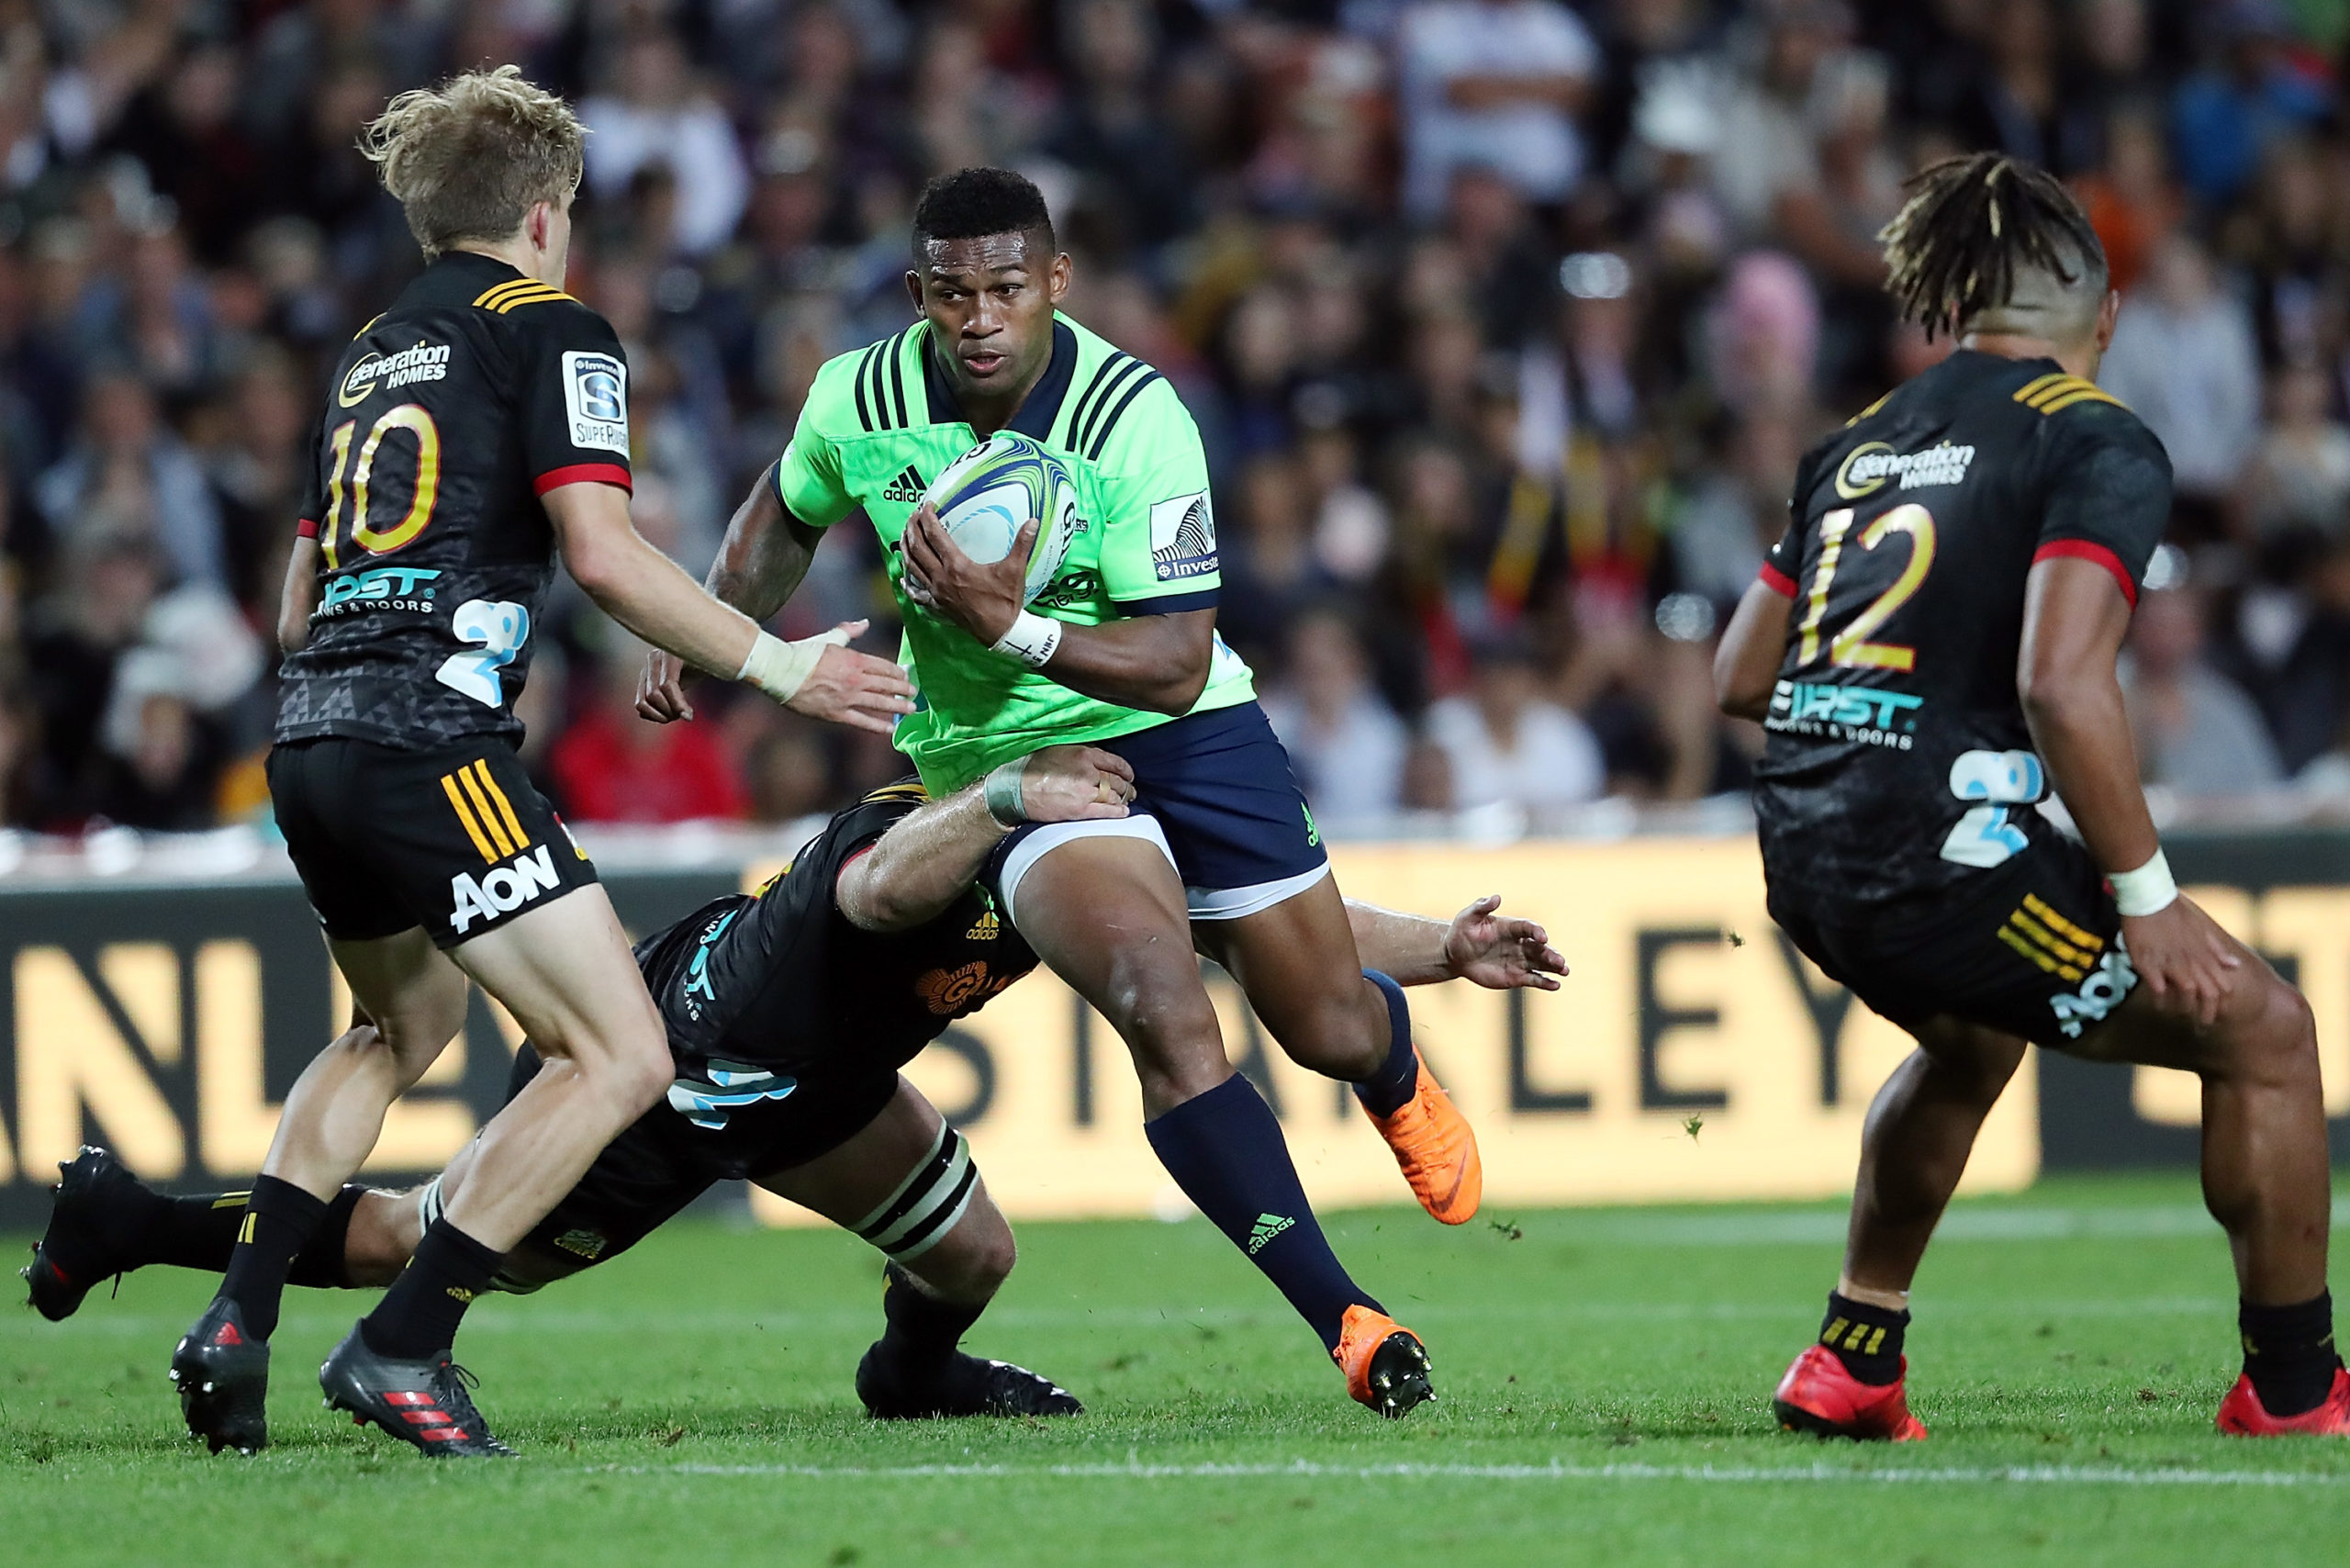 New Zealand's Super Rugby Aotearoa Set to Return Mid June - Newslibre